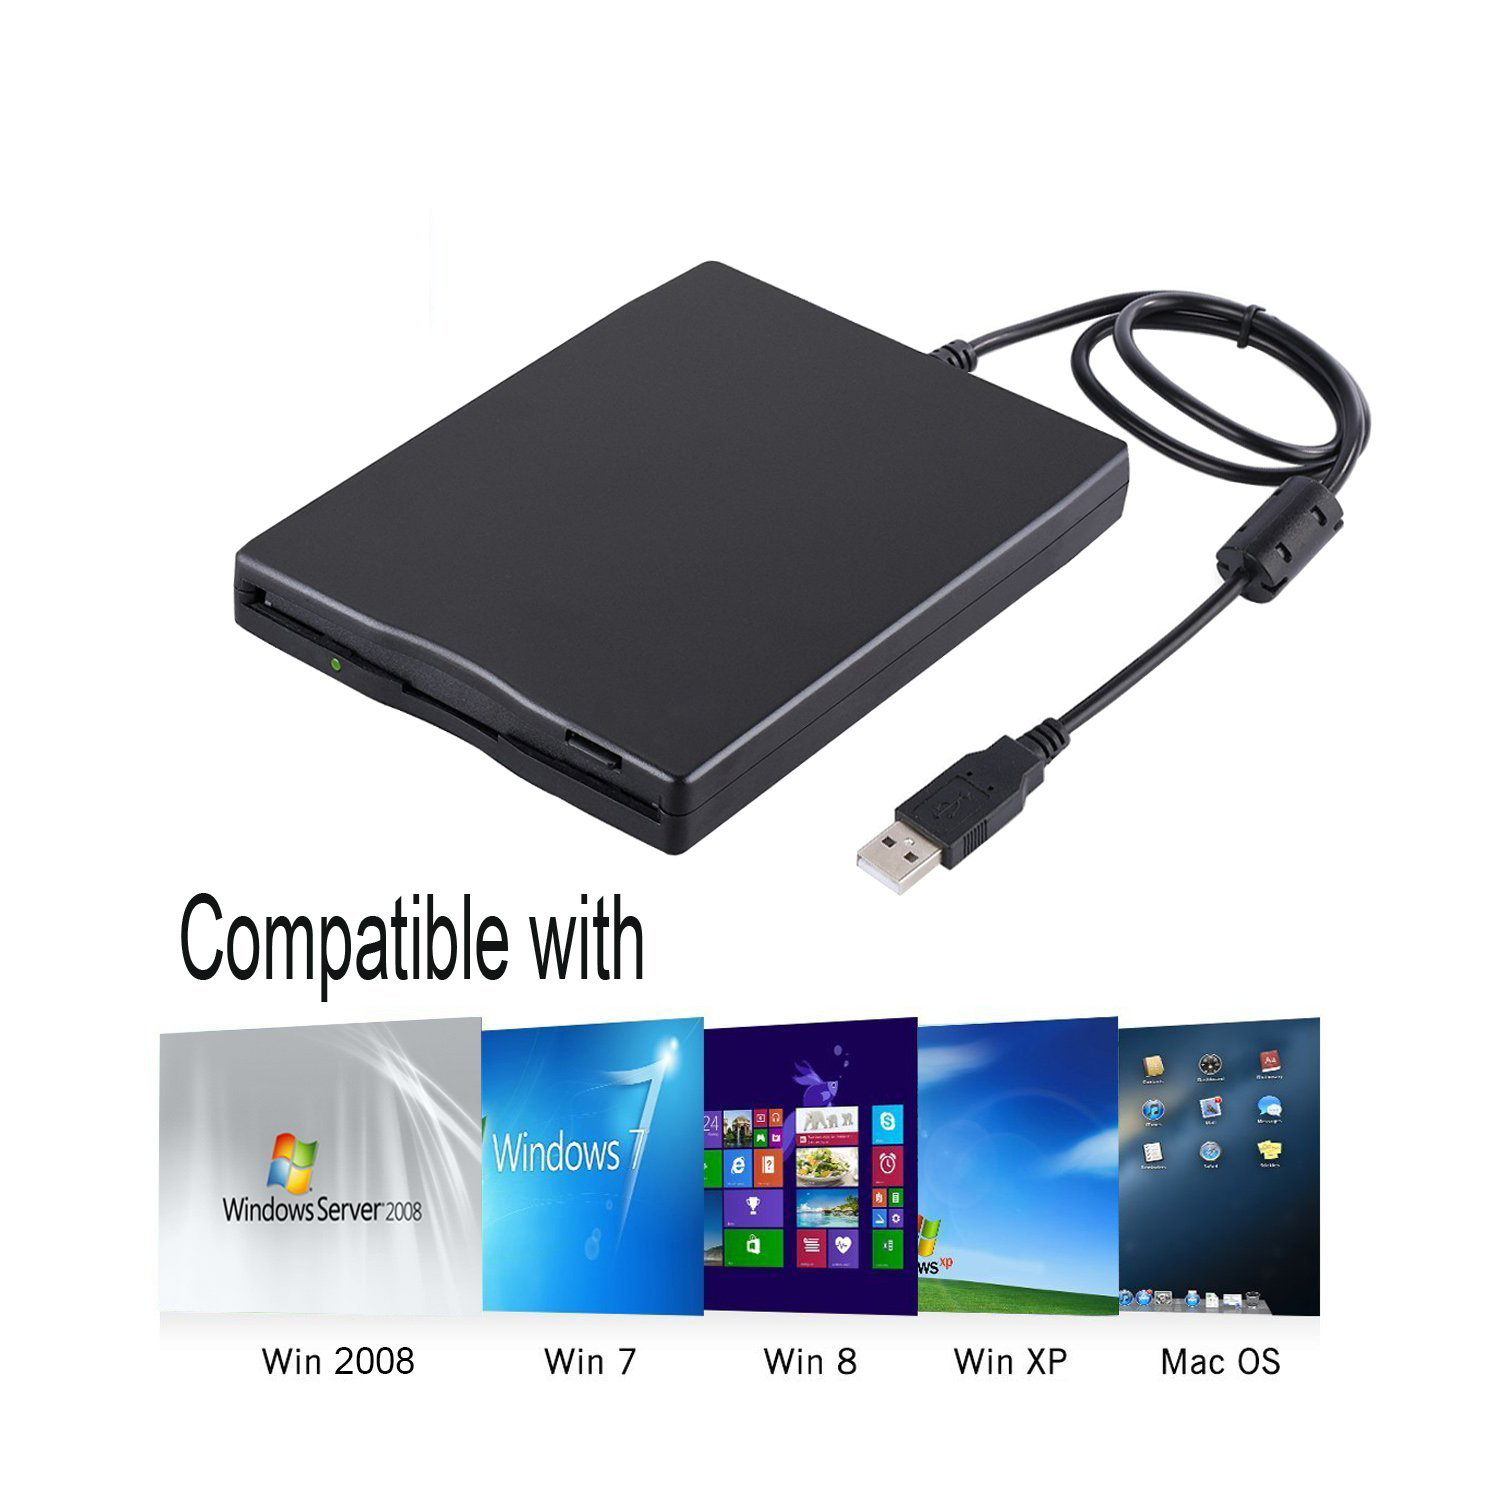 USB Floppy Drive, 3.5 Inch USB External Floppy Diskette Drive 1.44 MB FDD Portable USB Drive Plug And Play For Laptops Desktop